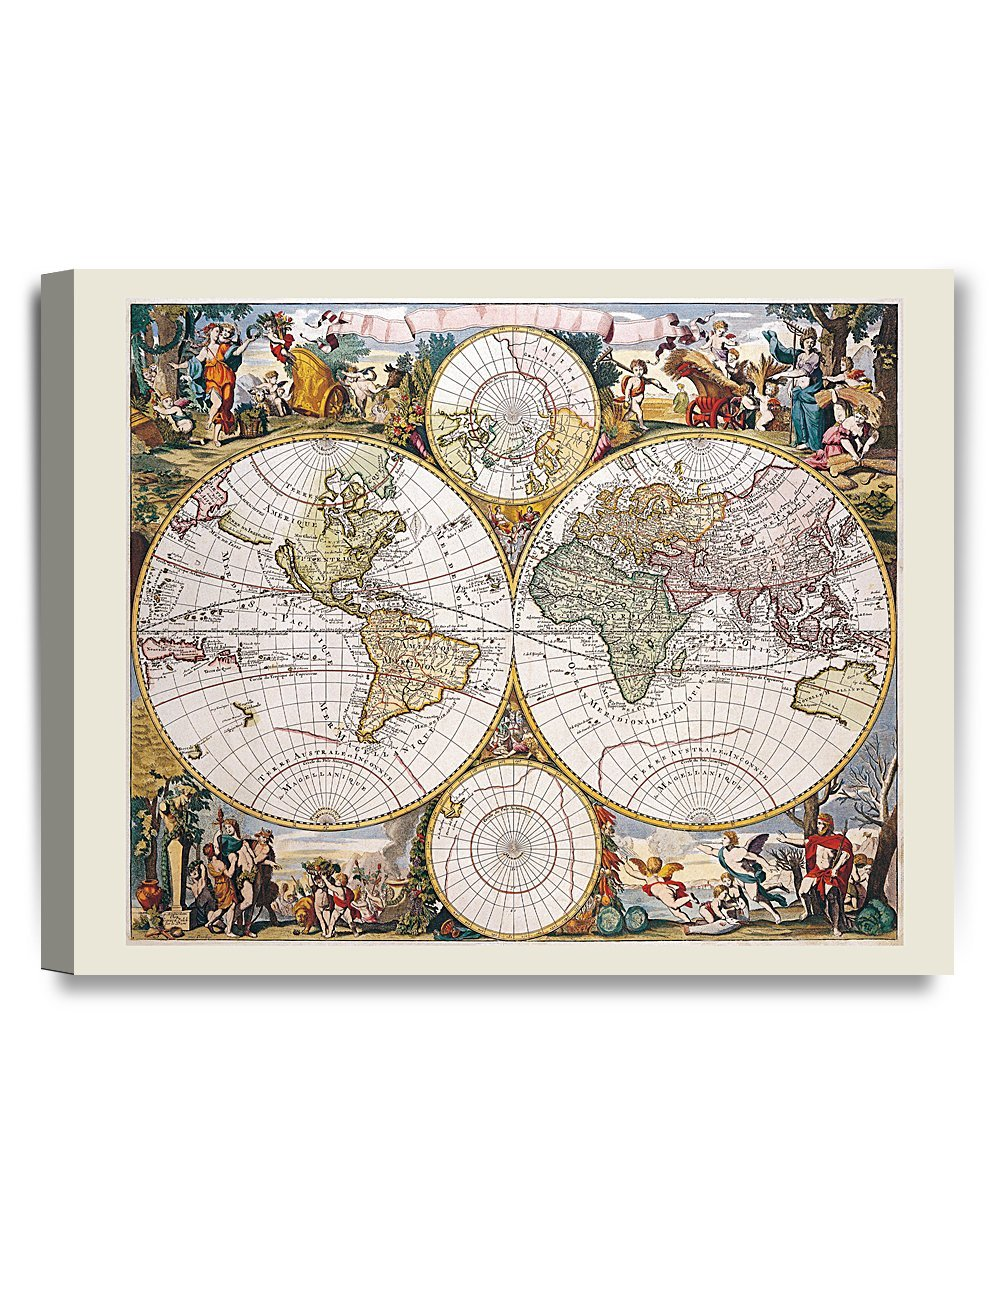 DecorArts - Antique World Travel Map. Vintage World Map High Resolution . Word map canvas. canvas art print. Giclee Print. Stretched canvas Museum Wrapped. 20x16""